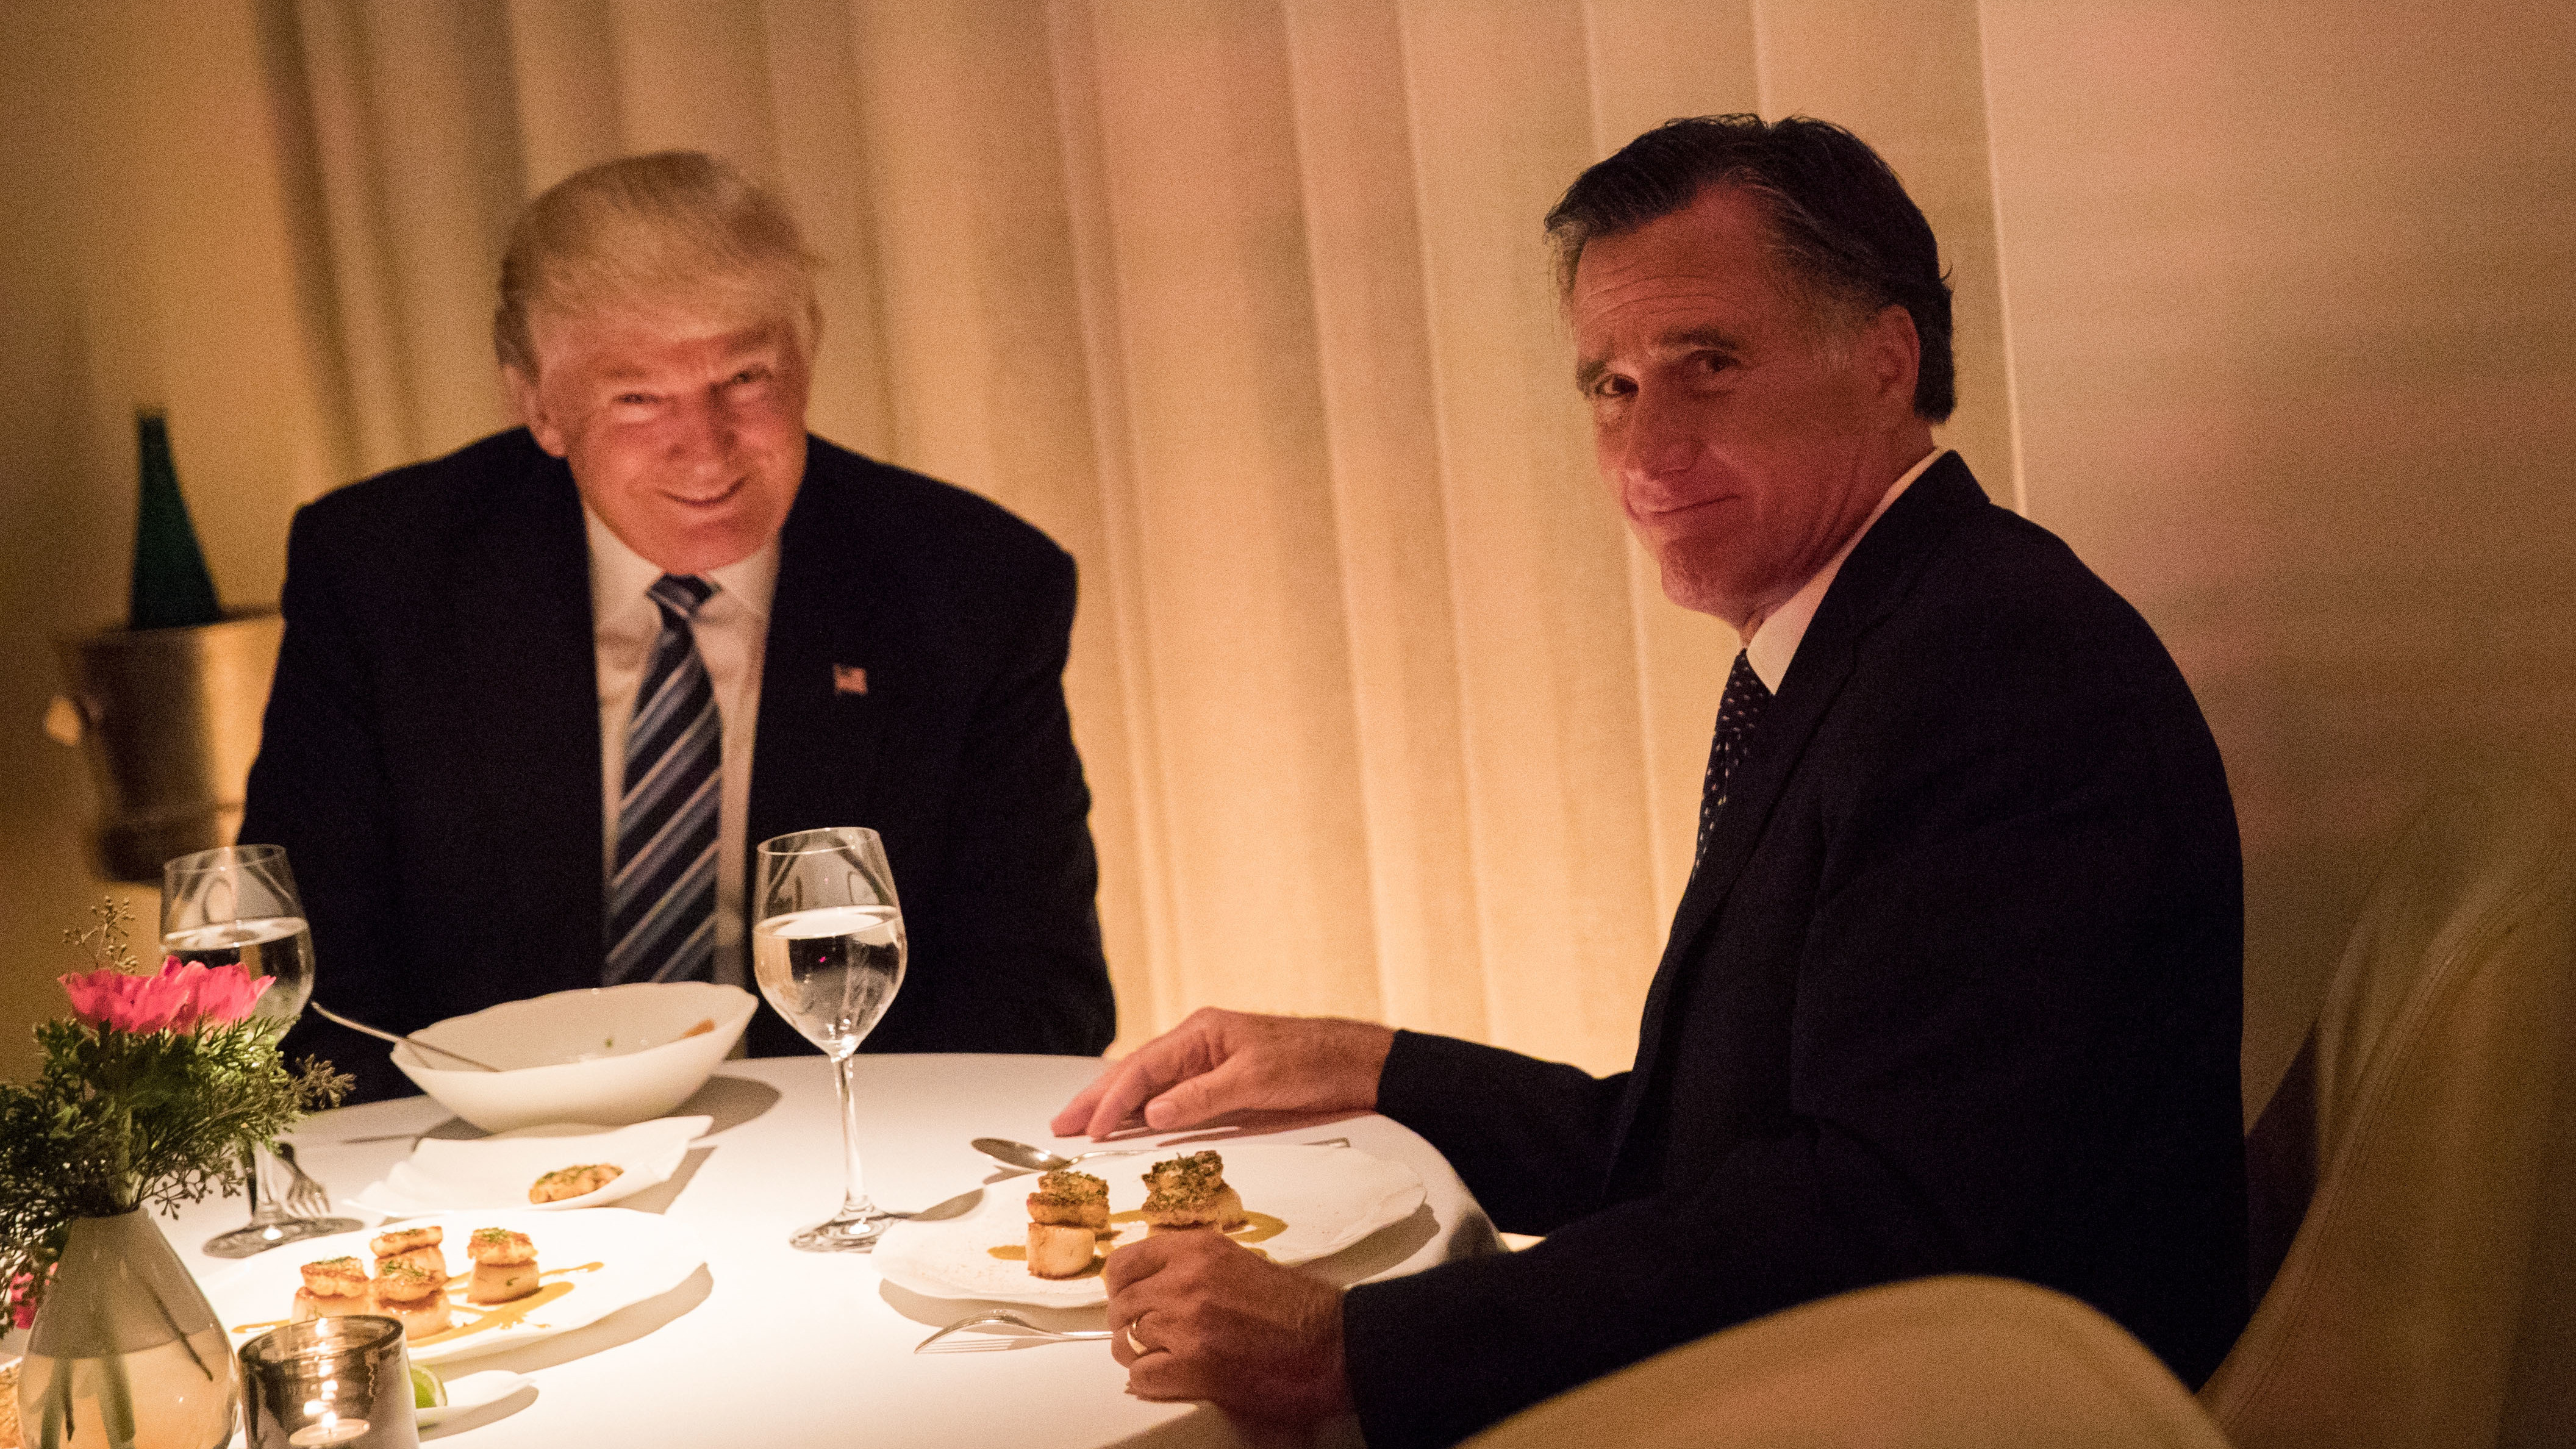 President-elect Trump and Mitt Romney dine at Jean Georges restaurant in November in New York, as Trump considered Romney for secretary of state.